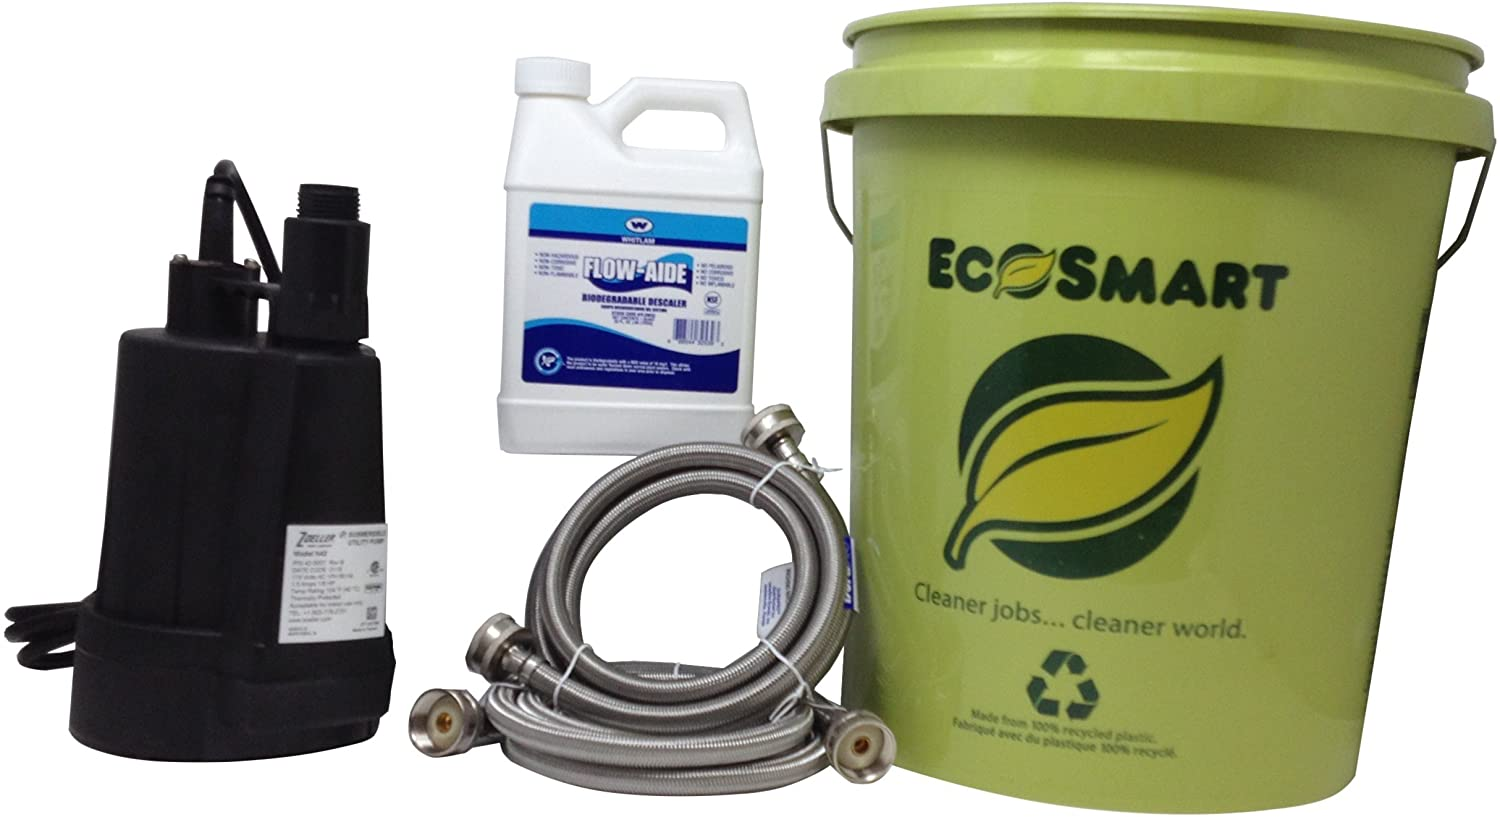 My PlumbingStuff - Tankless Water Heater Flushing Kit - 32-ounce J.C. Whitlam FLOW32 Flow-Aide System Descaler - Zoeller 42-0007 Floor Sucker Pump - 5-Gallon Bucket - User Instructions - Safe to Use